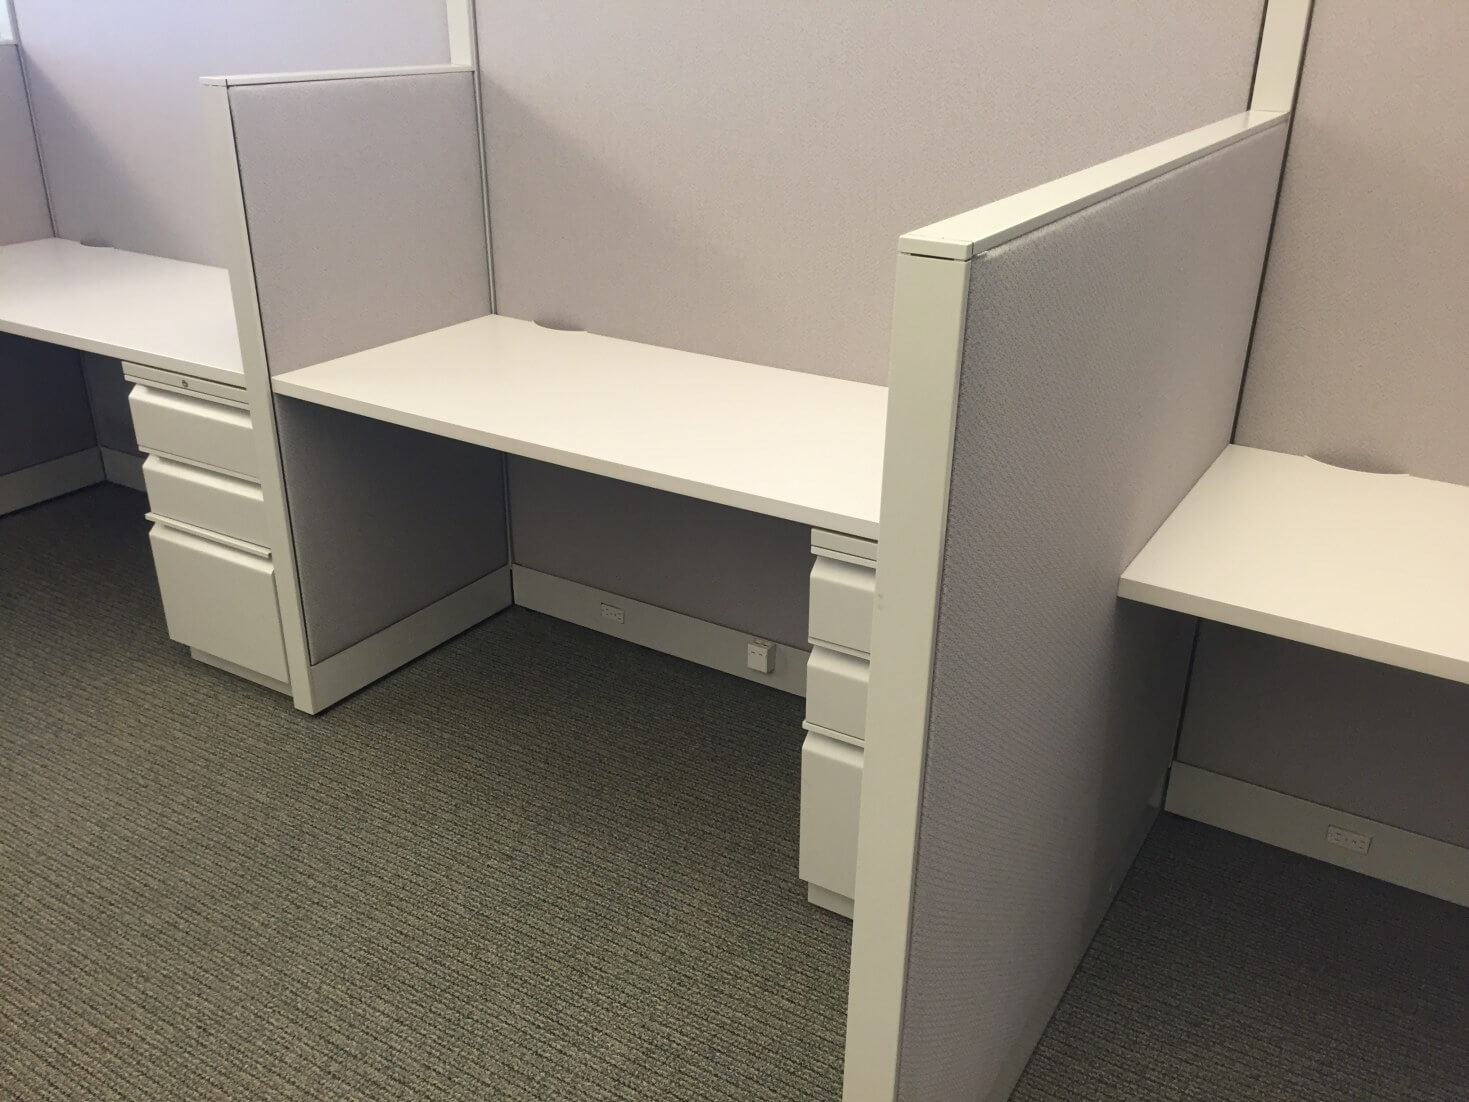 Used Hon Initiate 5x4x65 48h Combo Panels Used Cubicles